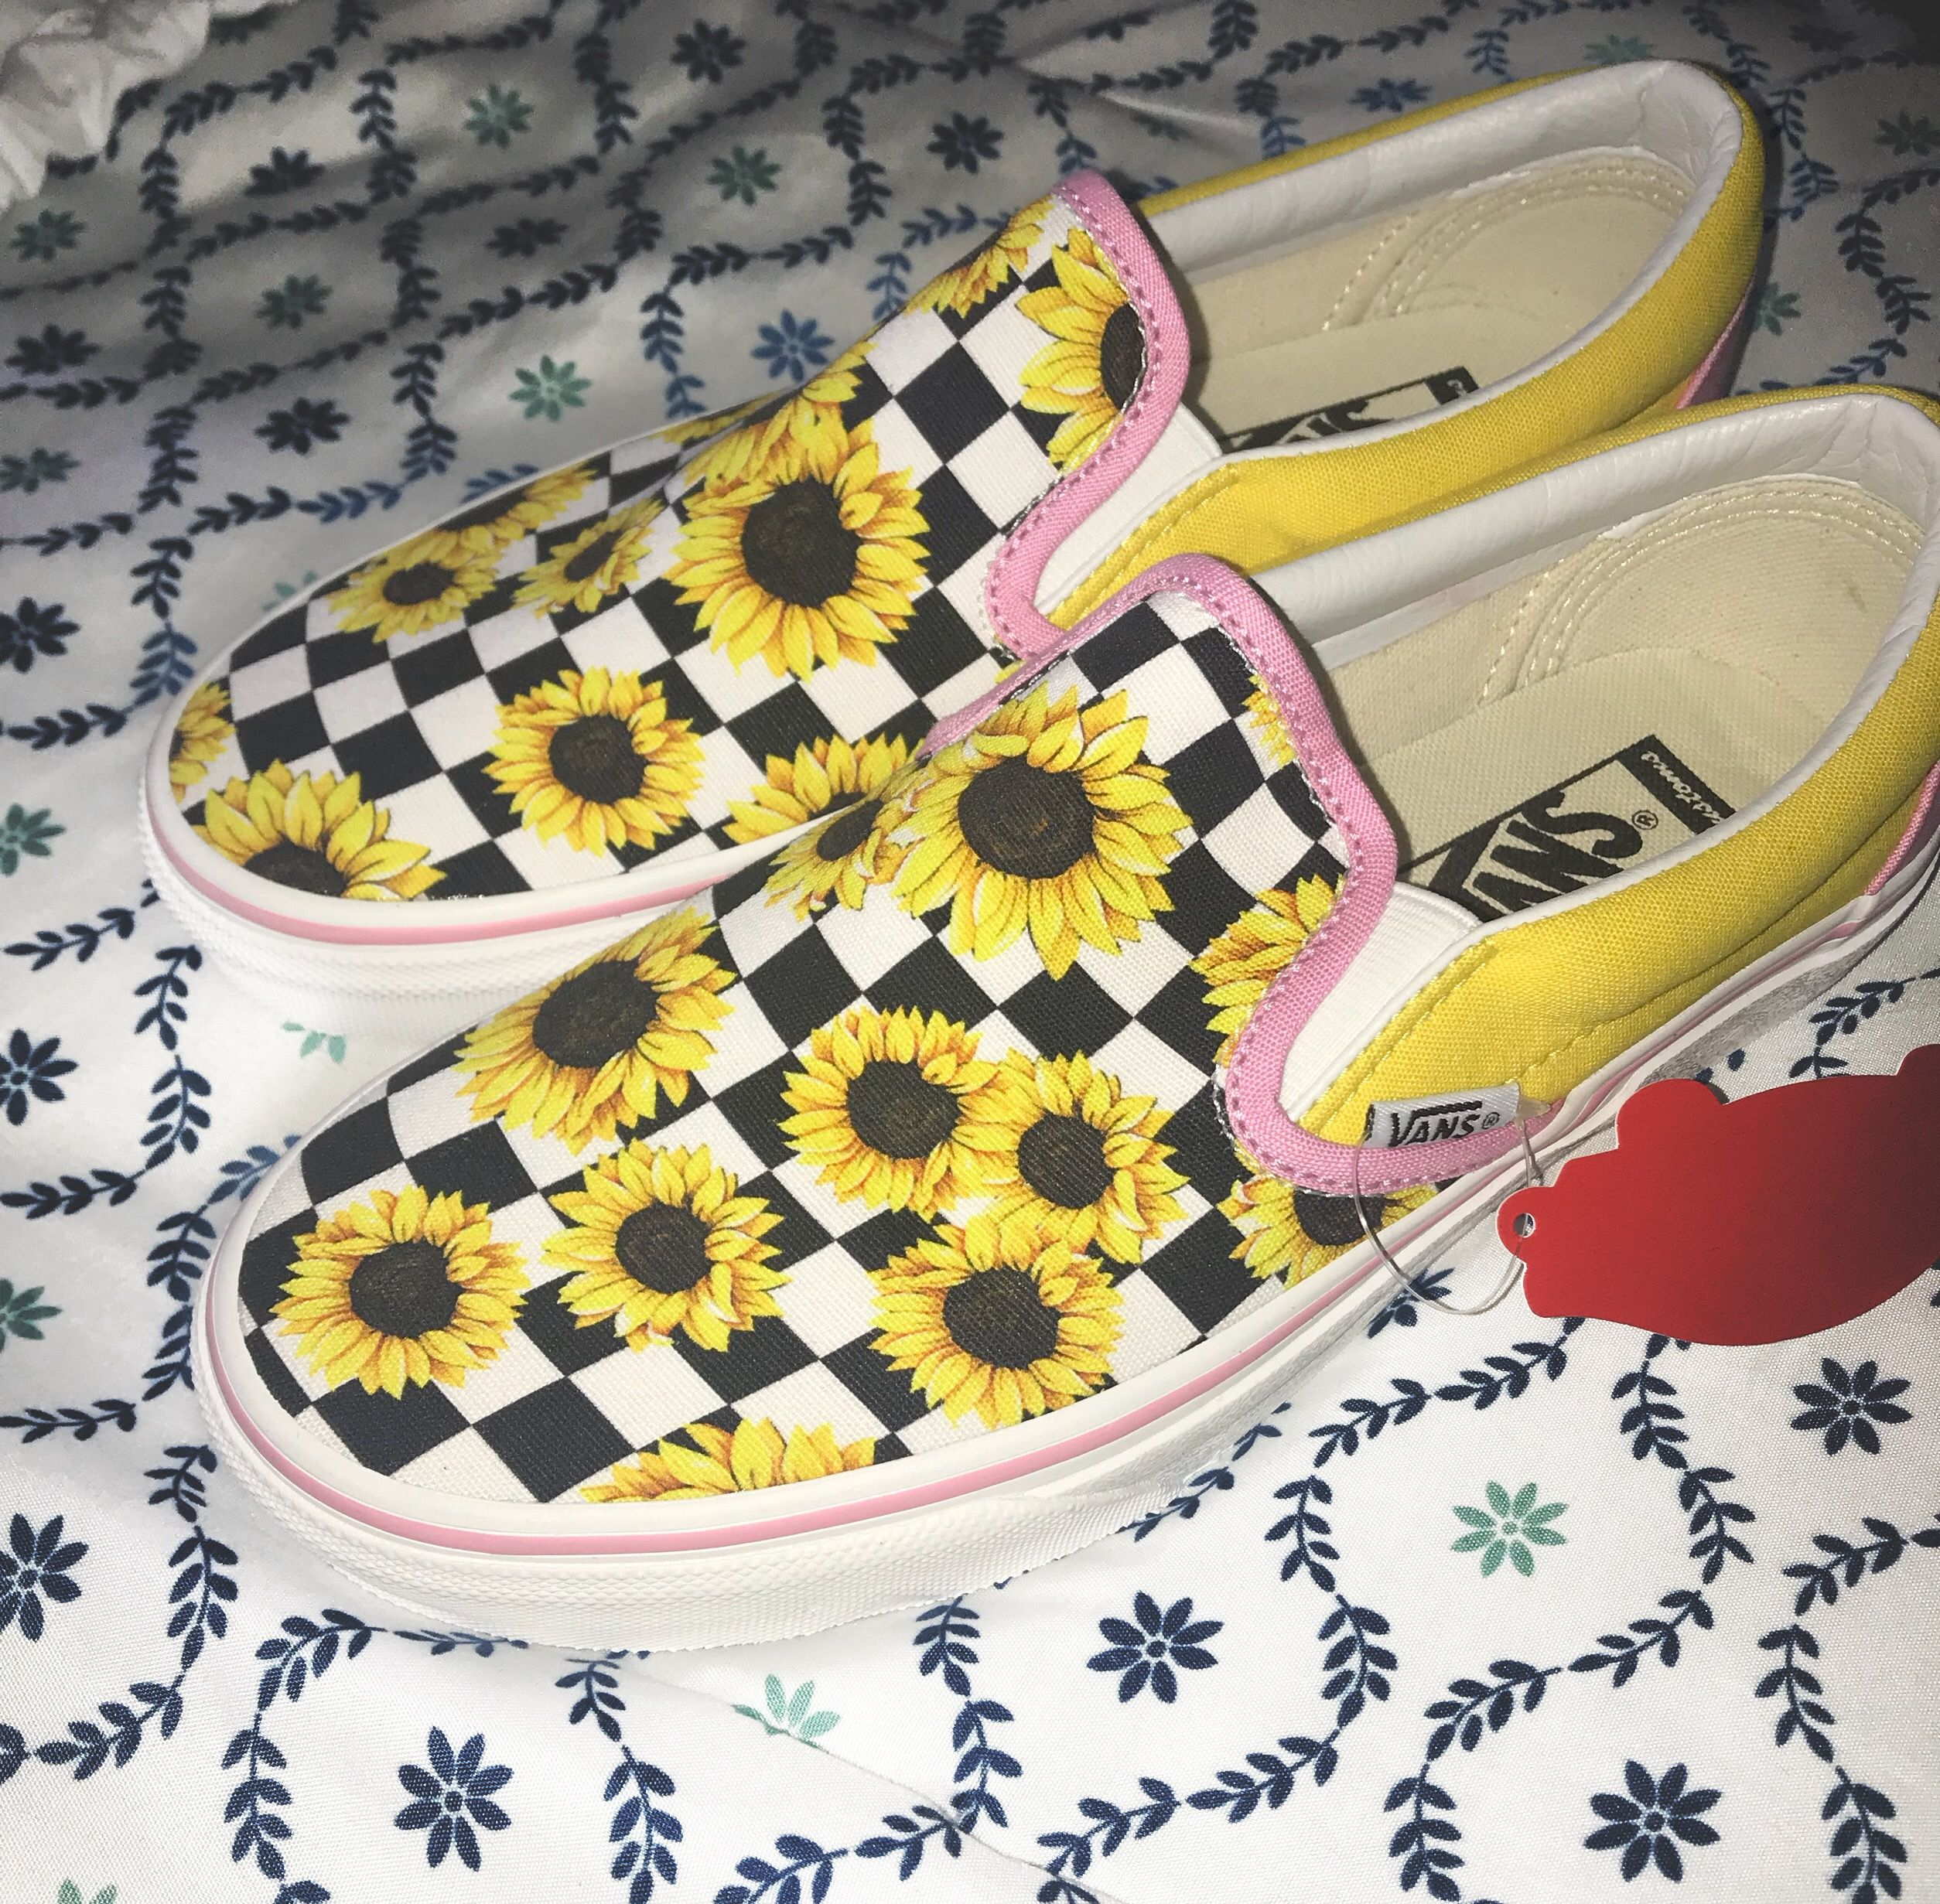 Sunflower vans | Vans slip on shoes, Personalized shoes